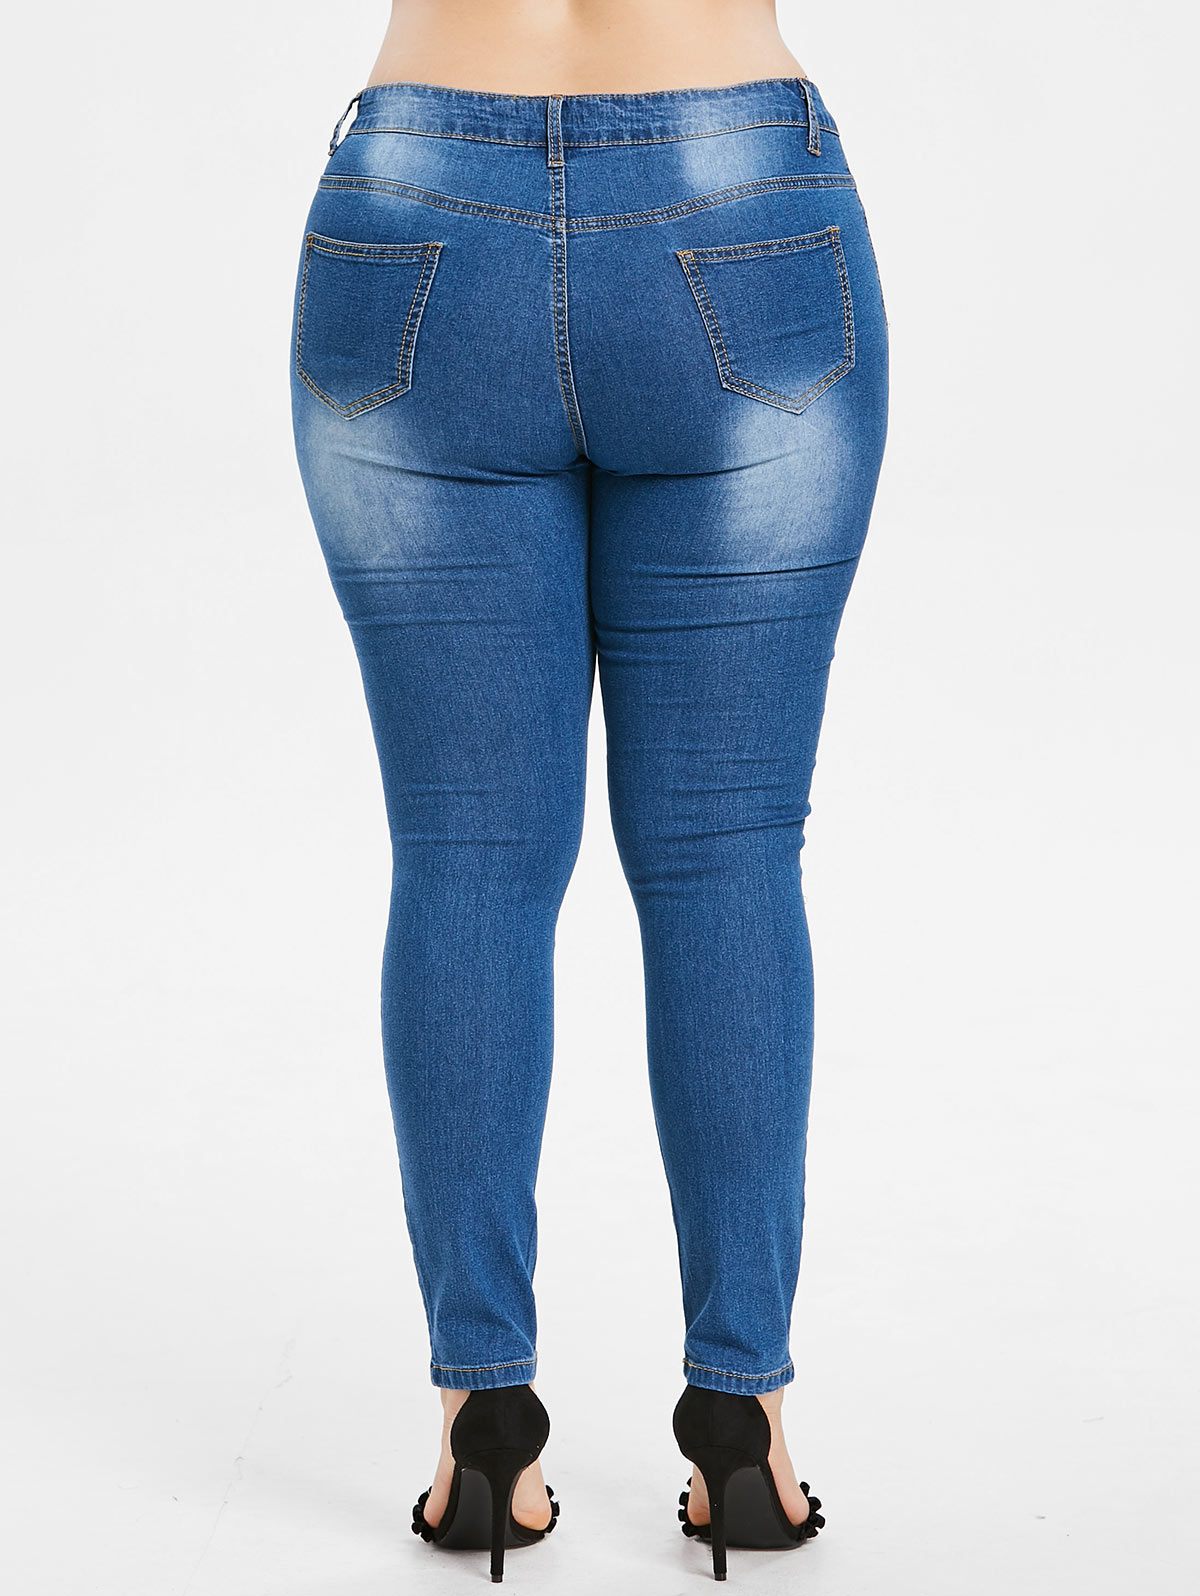 59ef0e70f2381 ... the jeans feature feminine and lovely butterfly embroidered in the  front